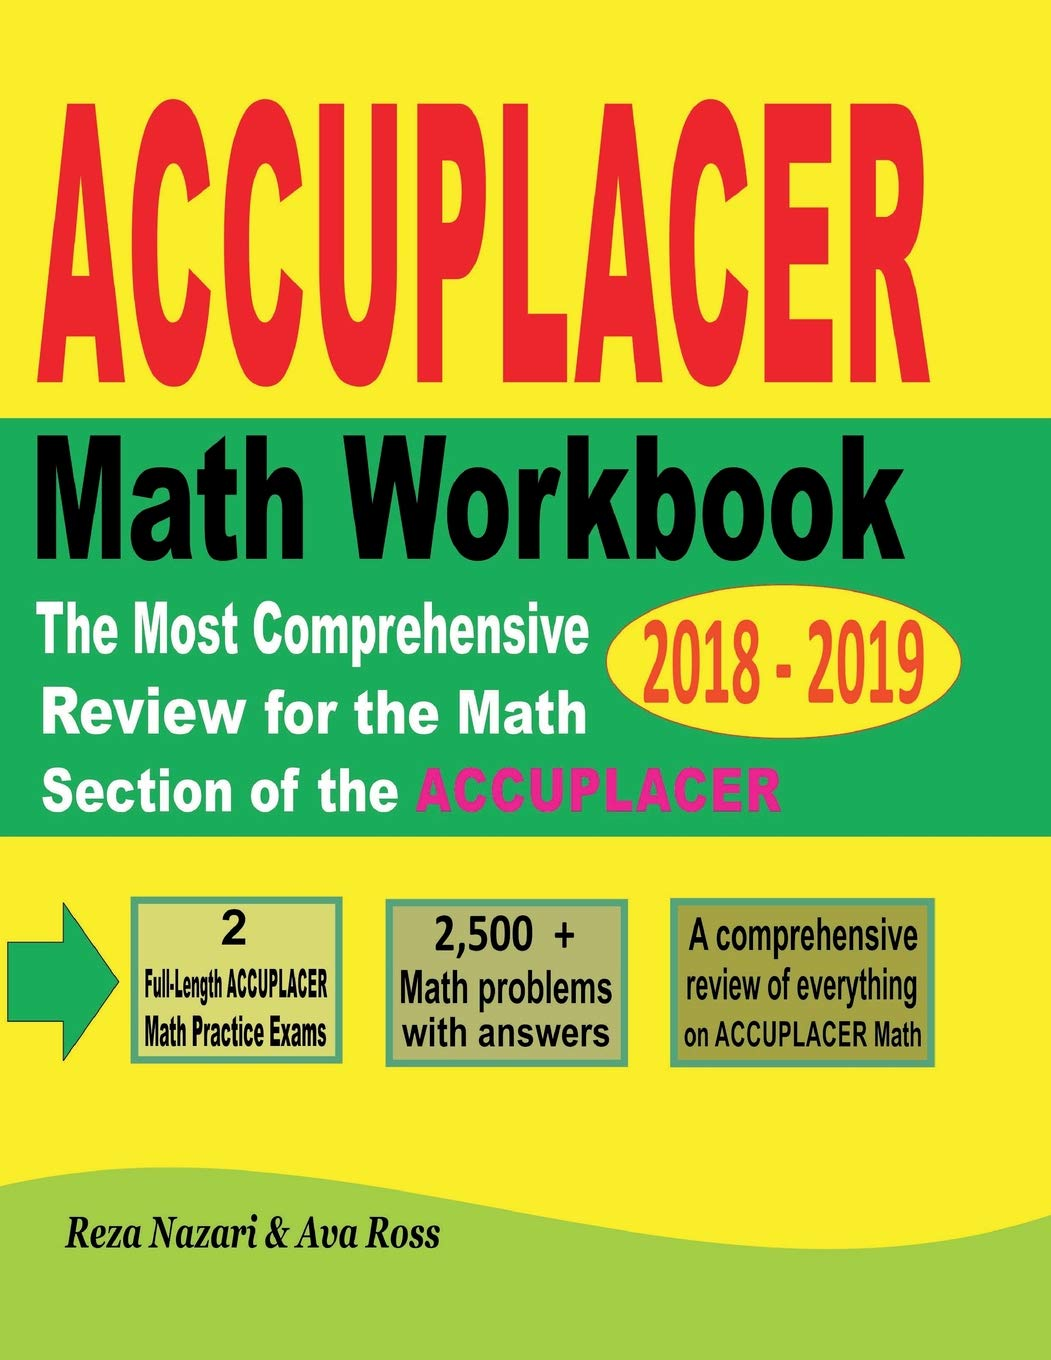 ACCUPLACER Mathematics Workbook 2018 - 2019: The Most Comprehensive Review for the Math Section of the ACCUPLACER TEST ebook